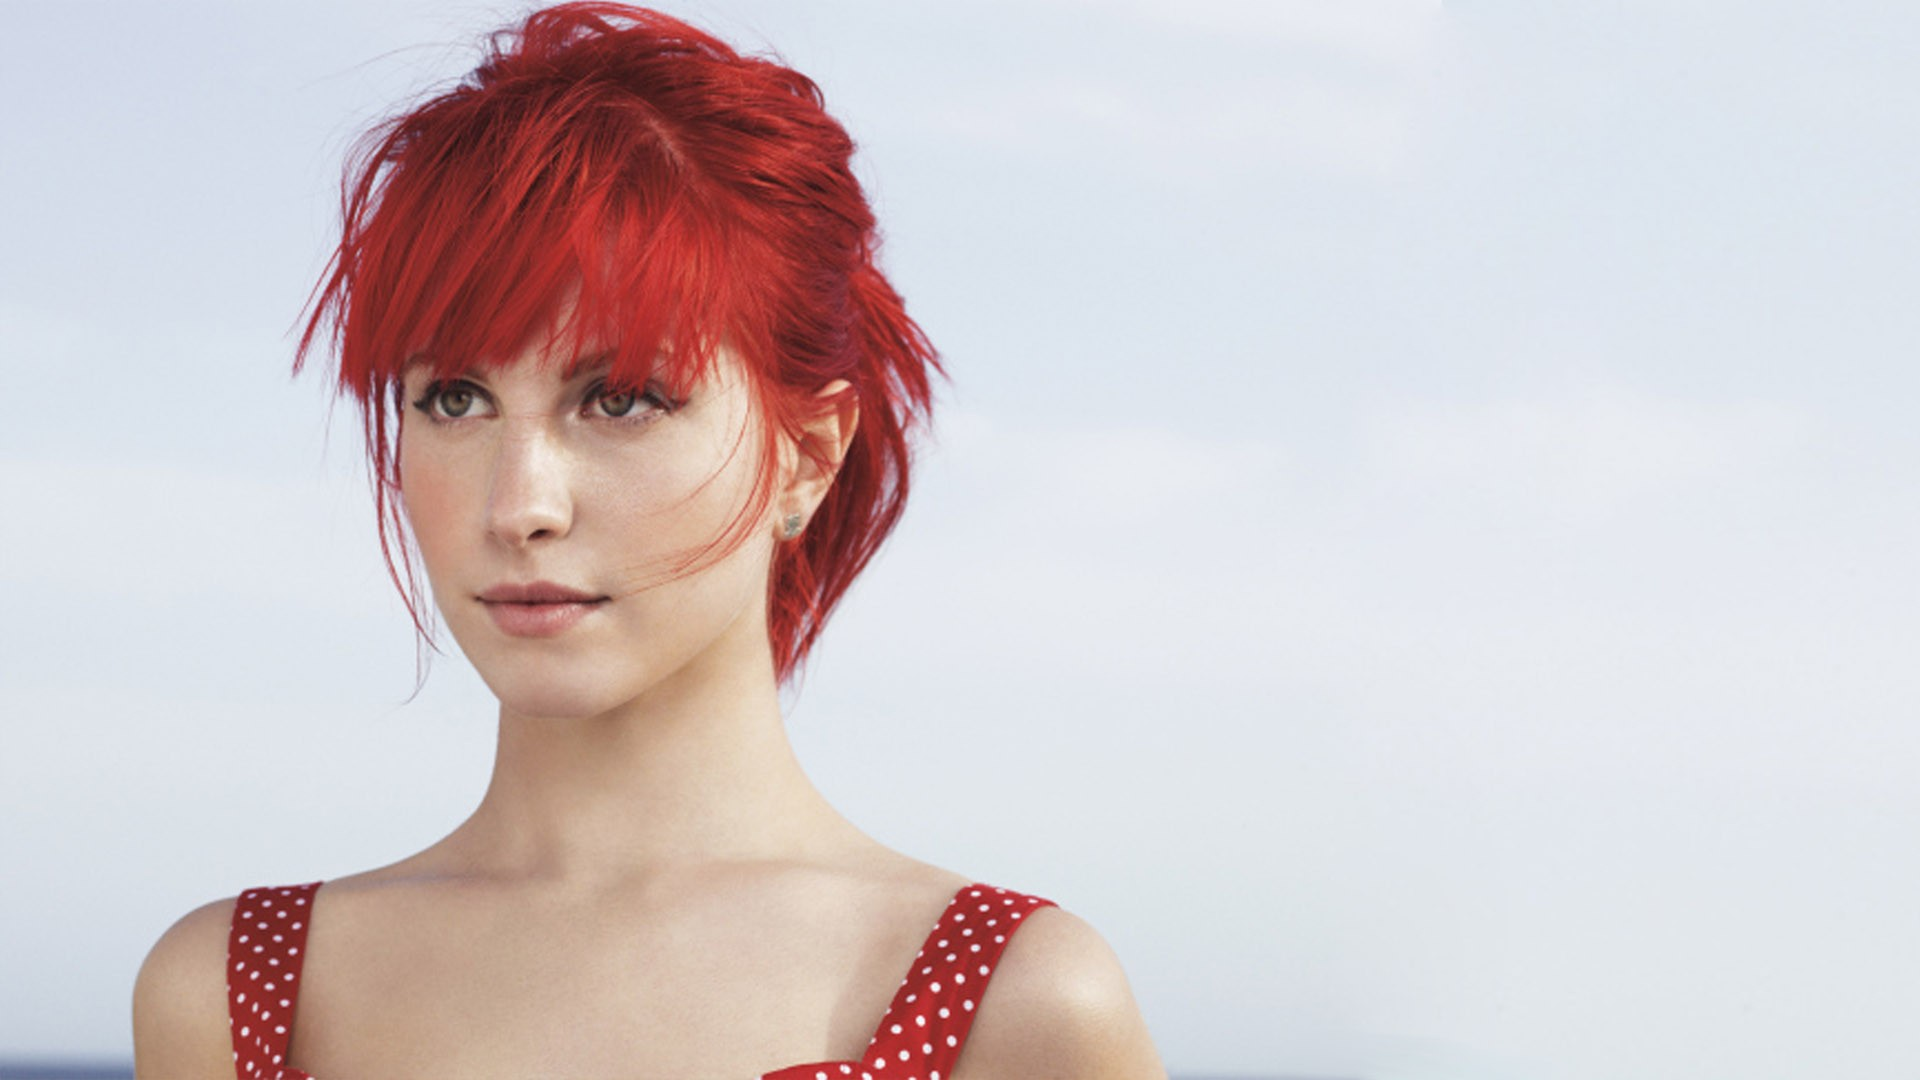 hayley williams free hd - photo #19